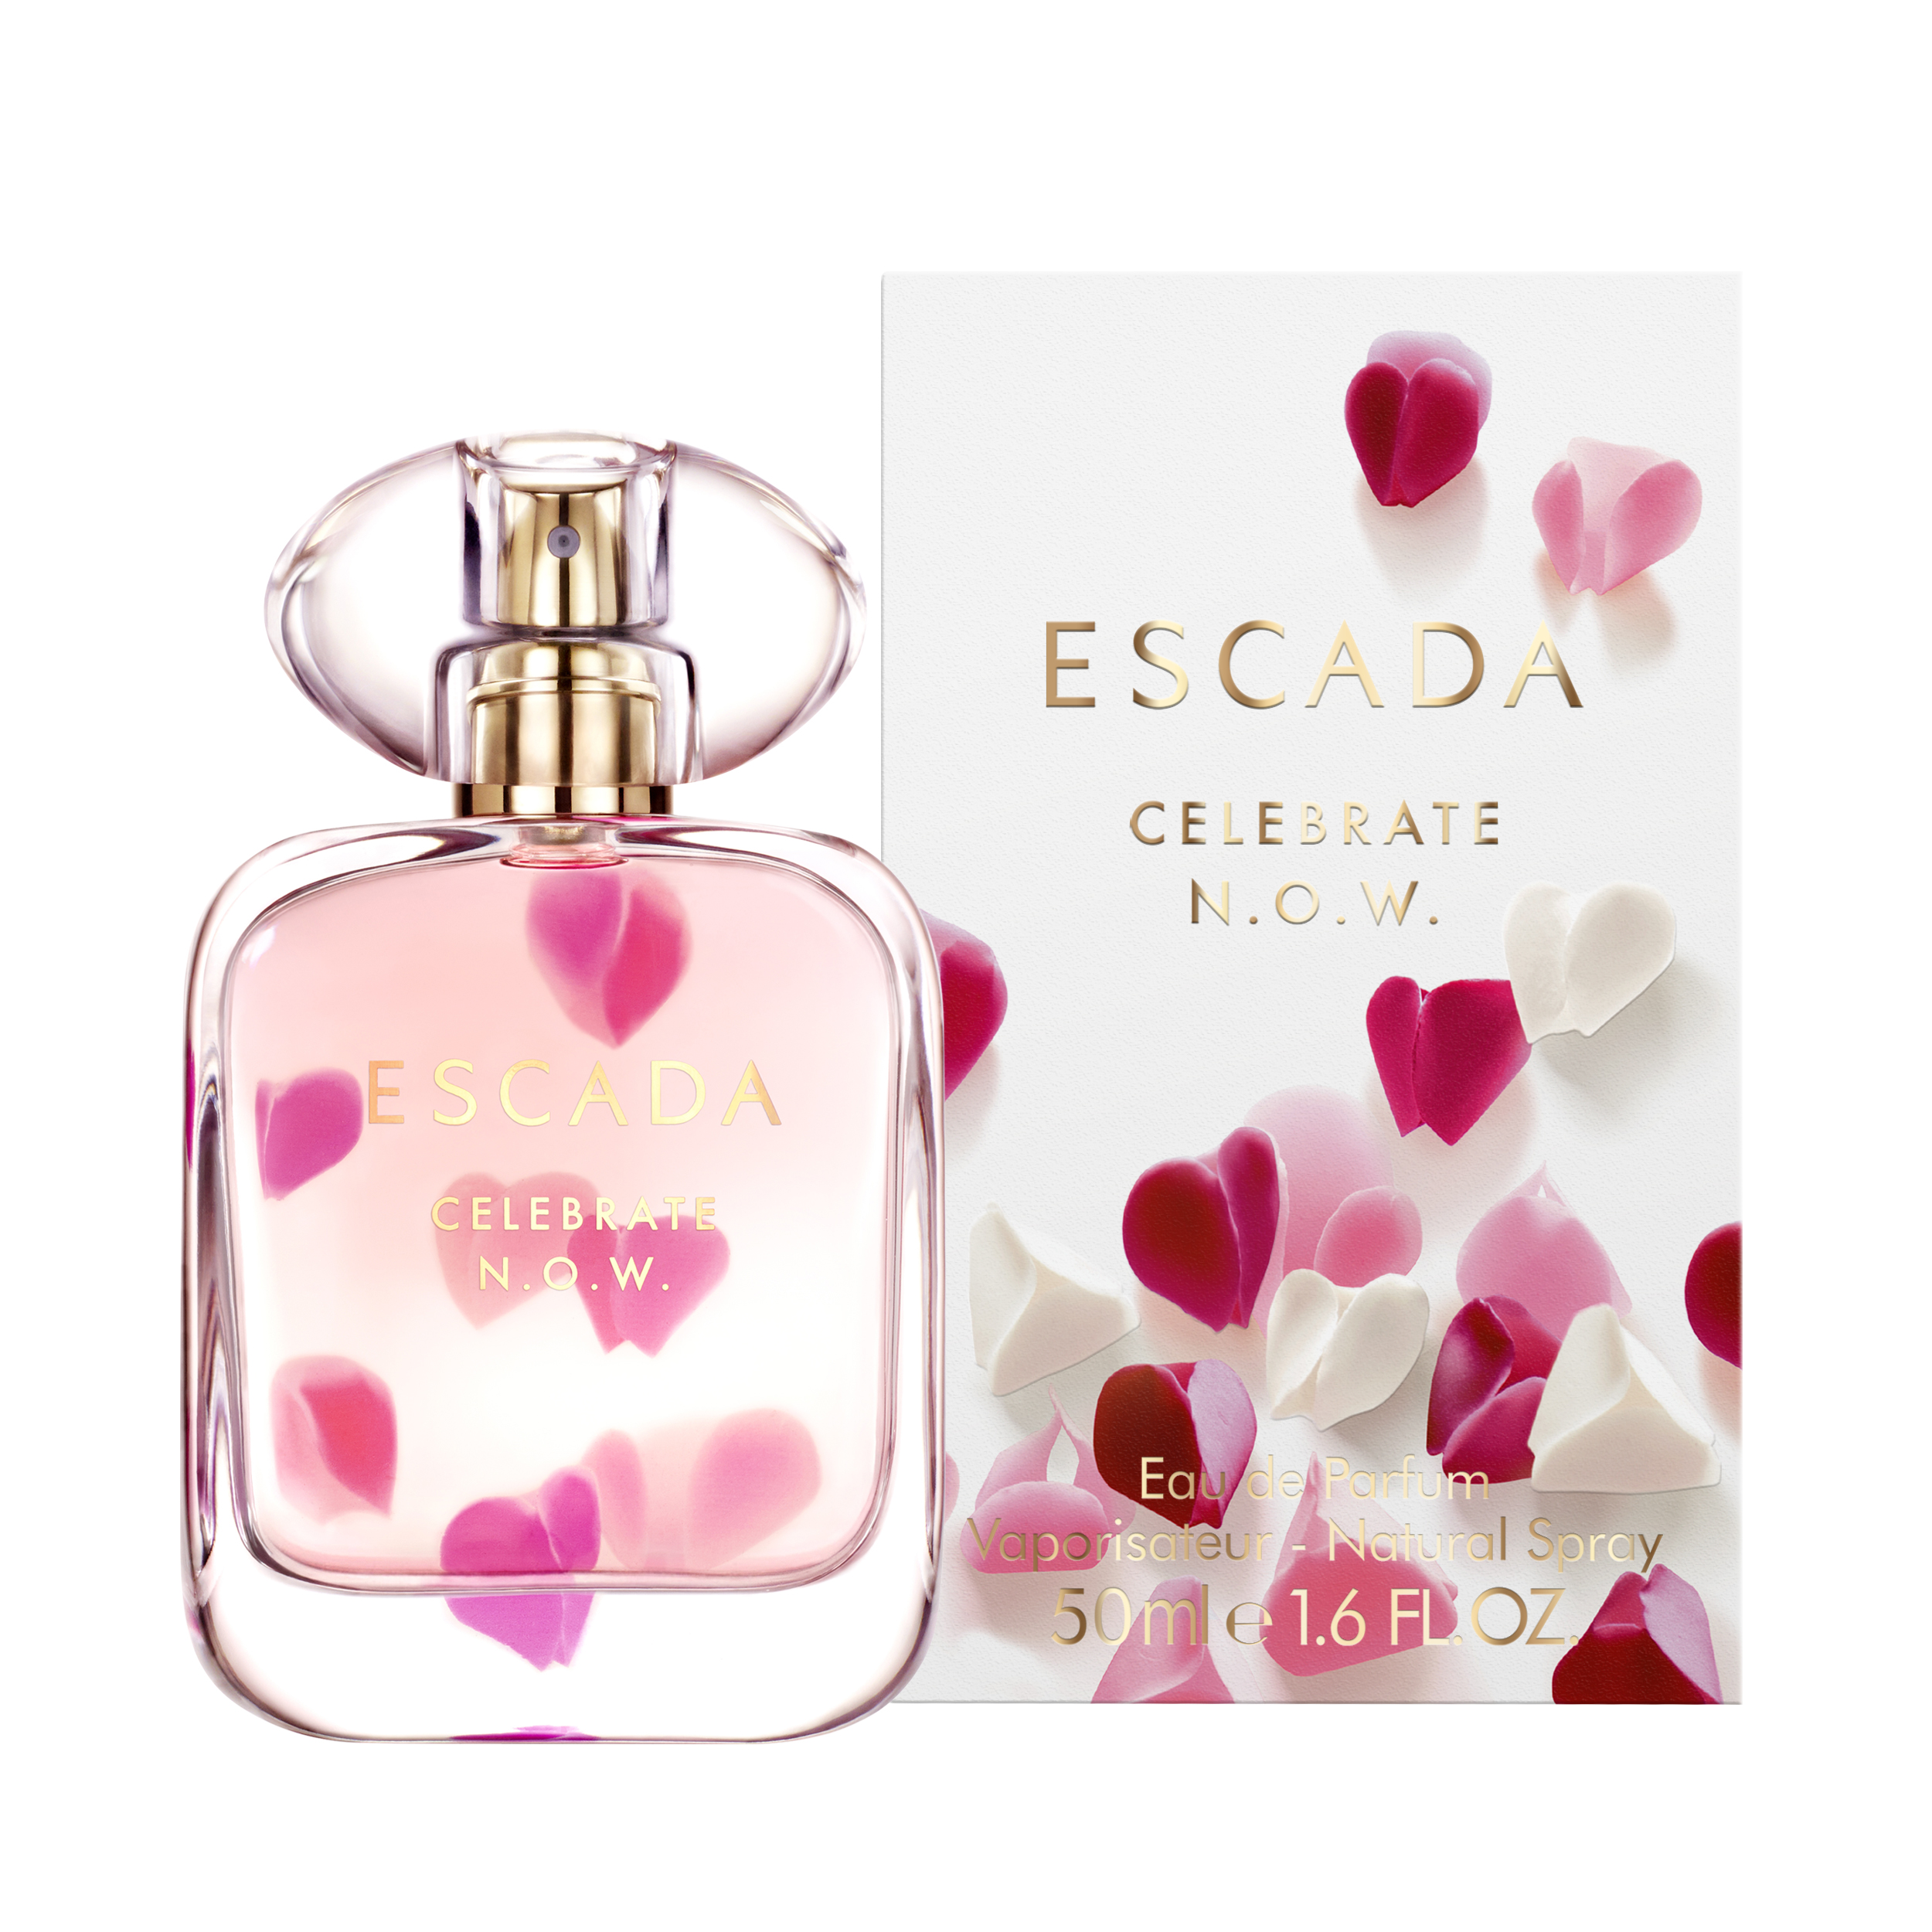 ESCADA CELEBRATE NOW EAU DE PARFUM 50ML